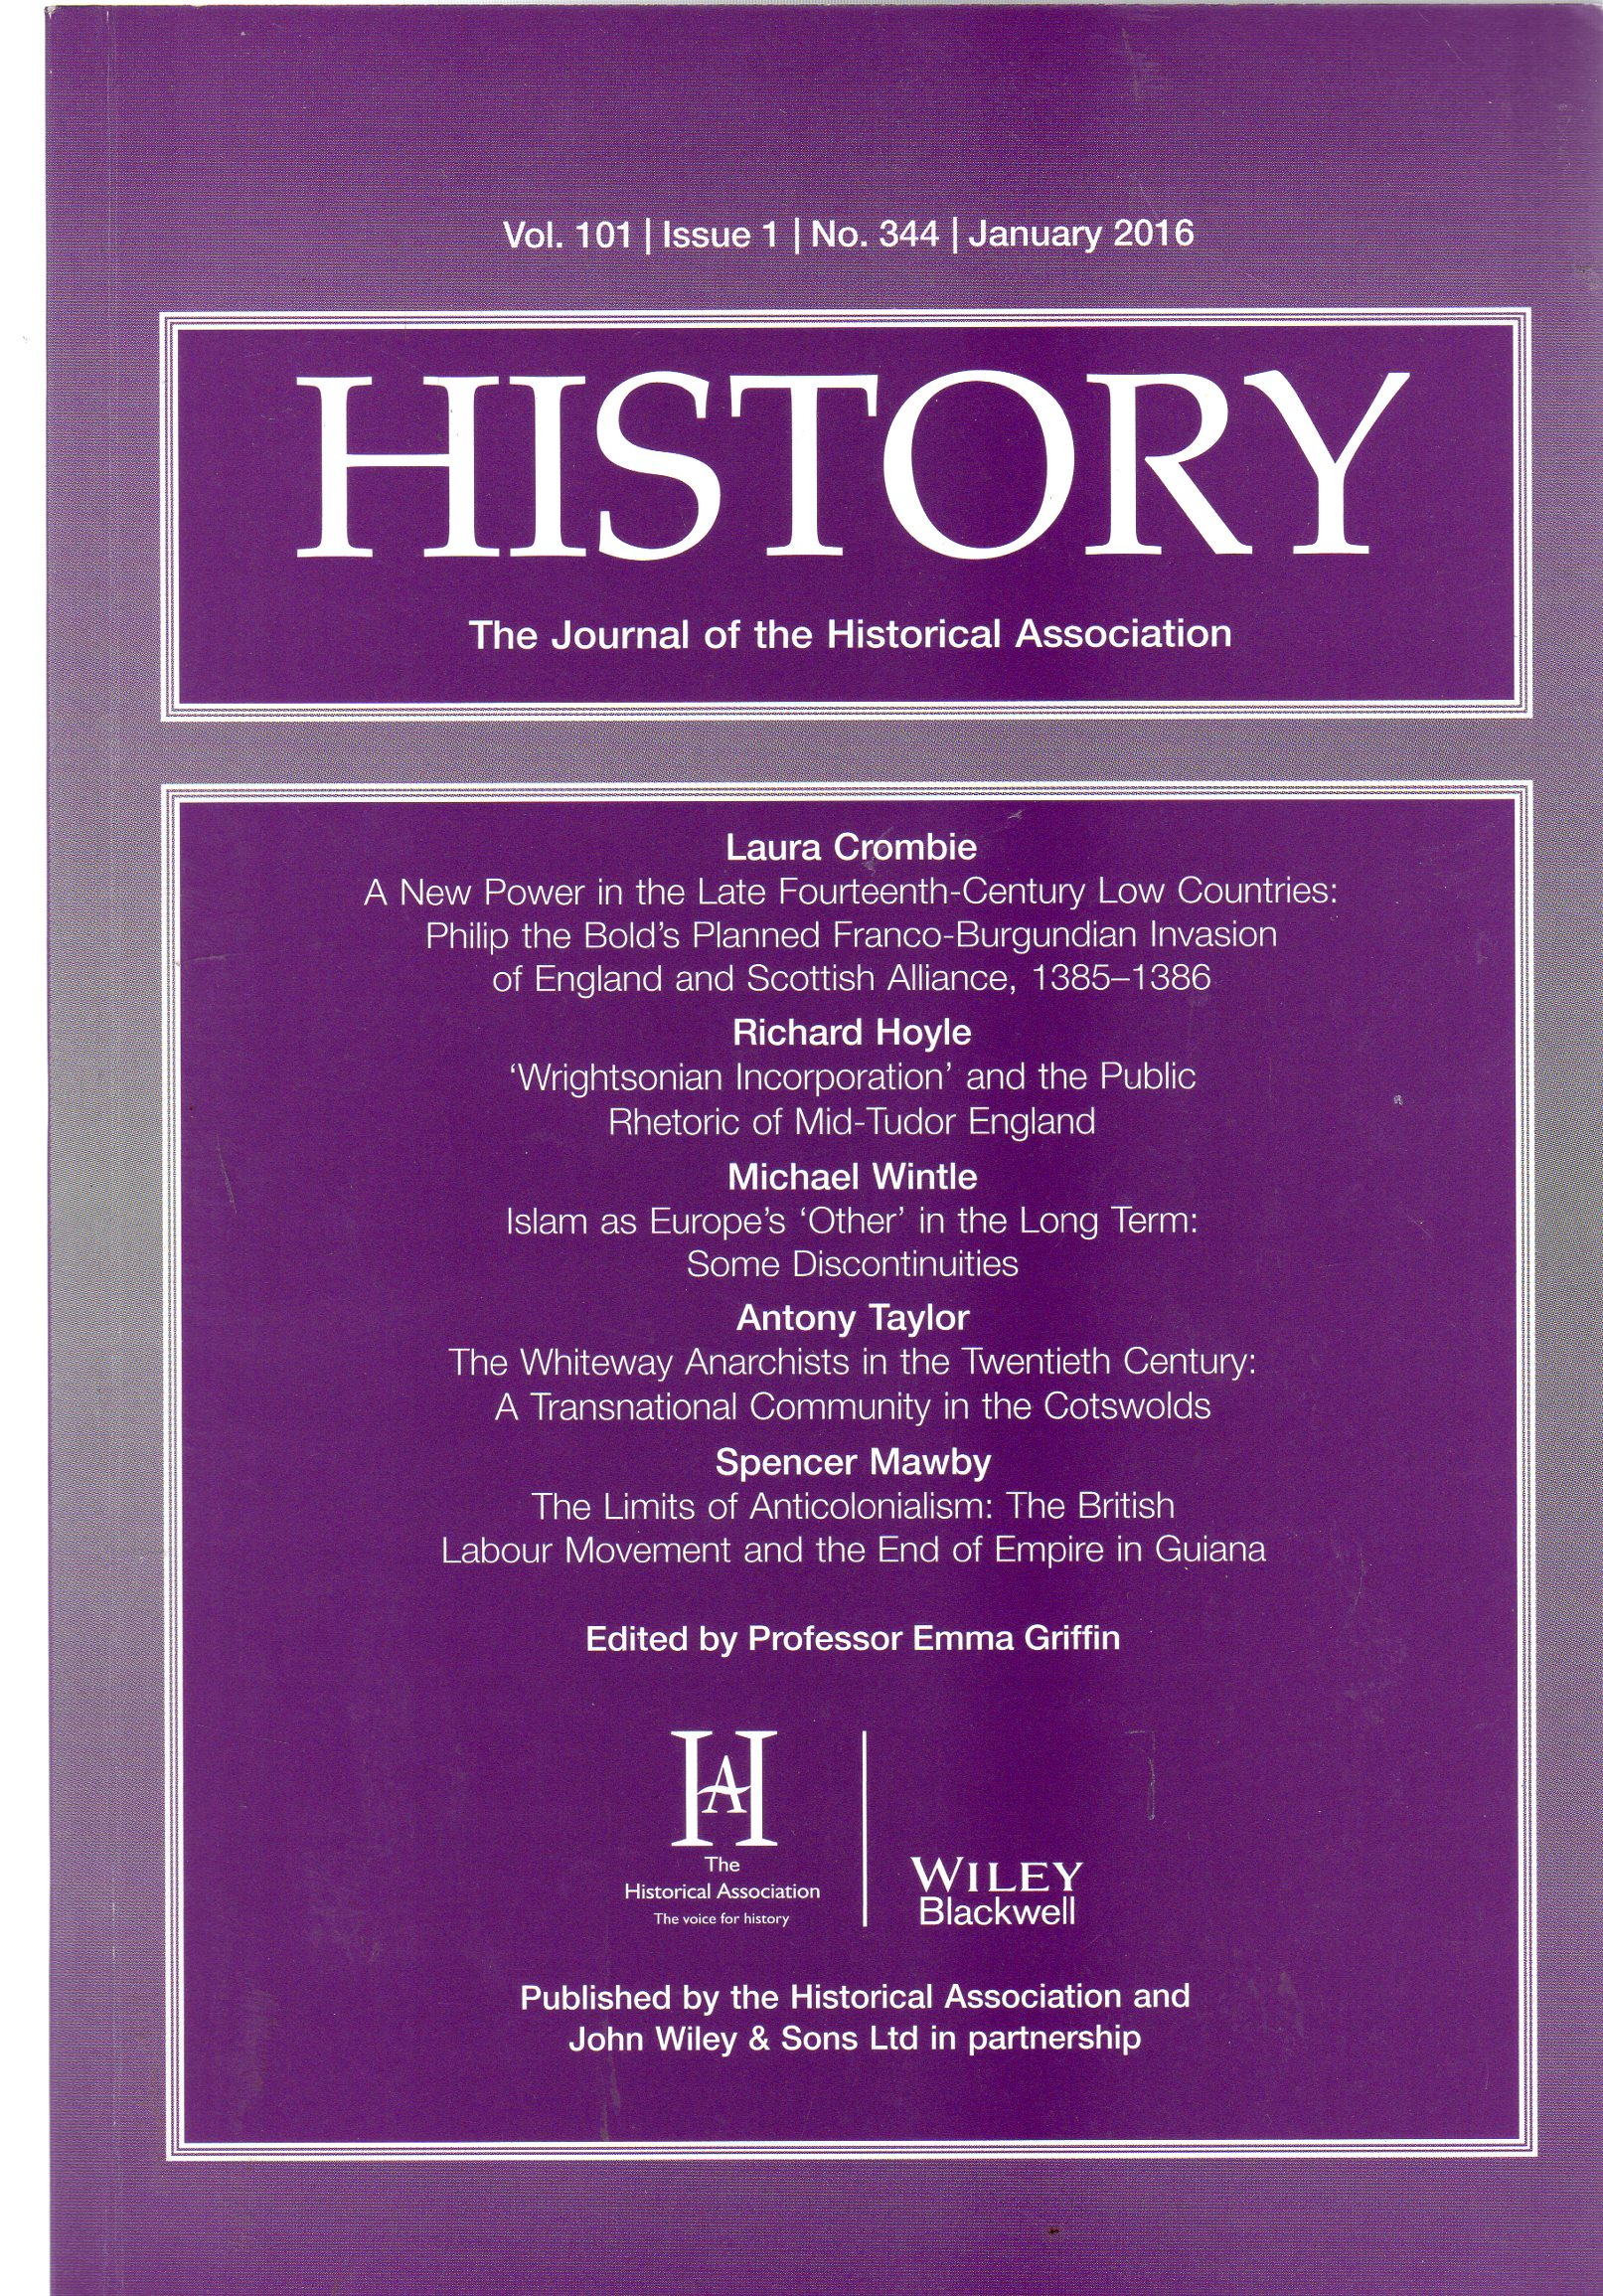 Image for History : The Journal of the Historical Association - Volume 101 Issue 1 No 344 January 2016